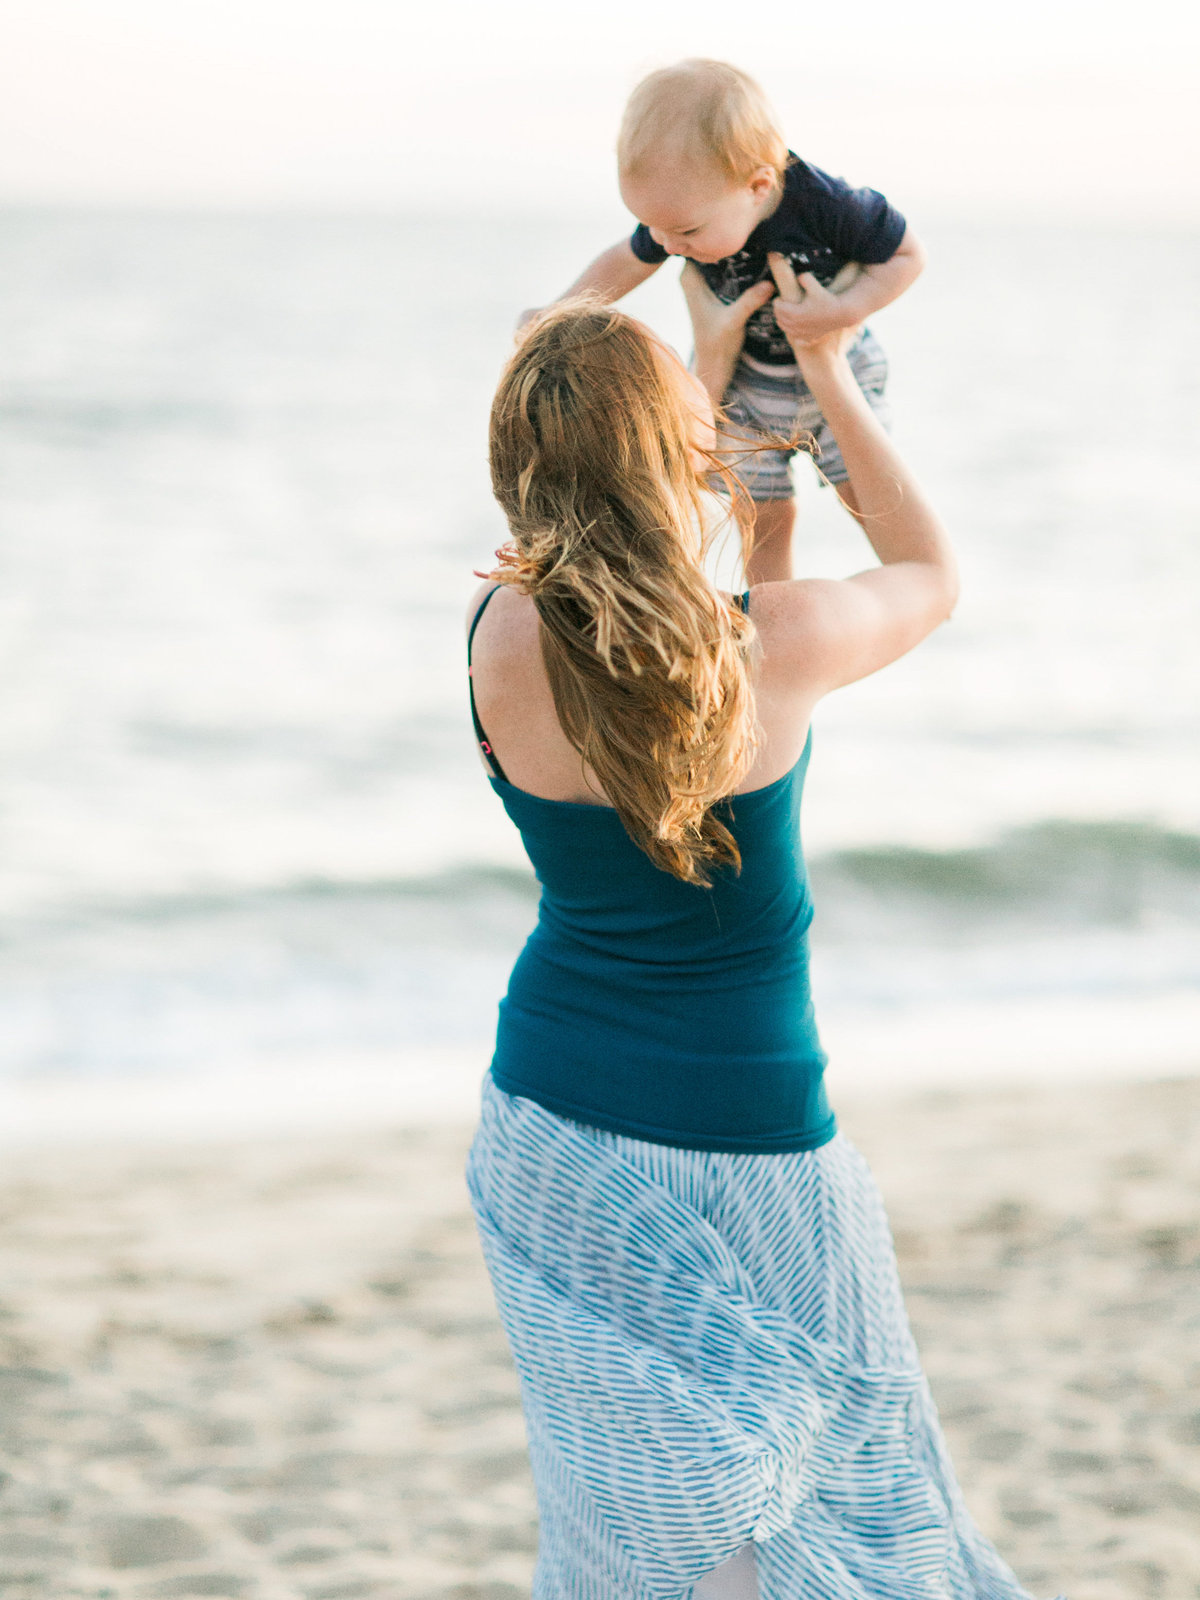 Delaware Family Photographer, Stacy Hart Photography56